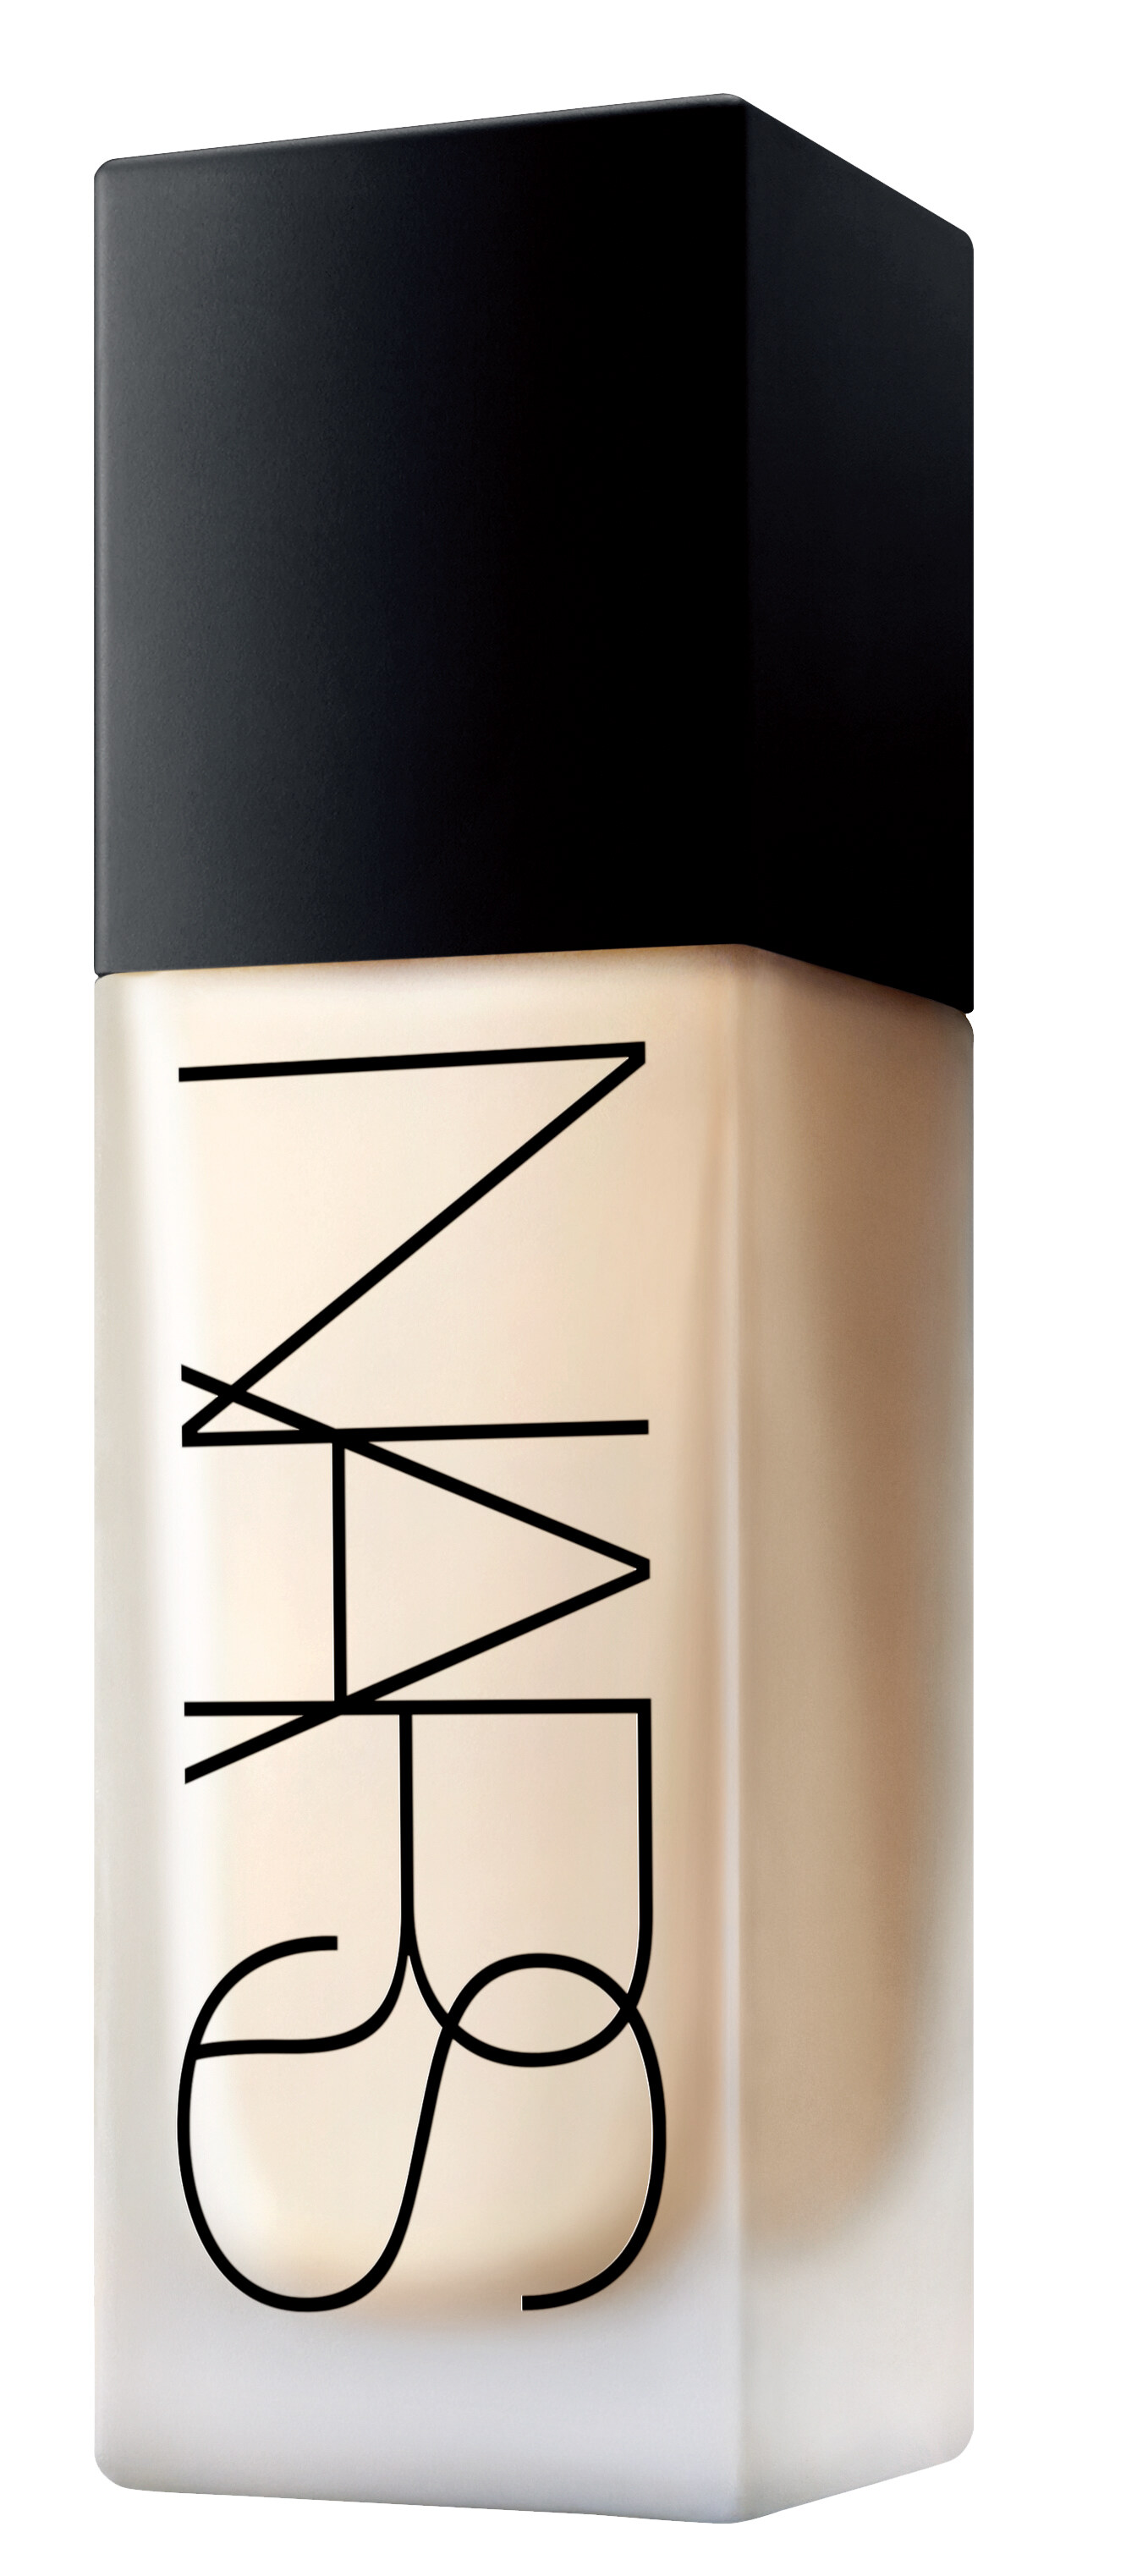 Nars All Day Luminous Weightless Foundation($460)